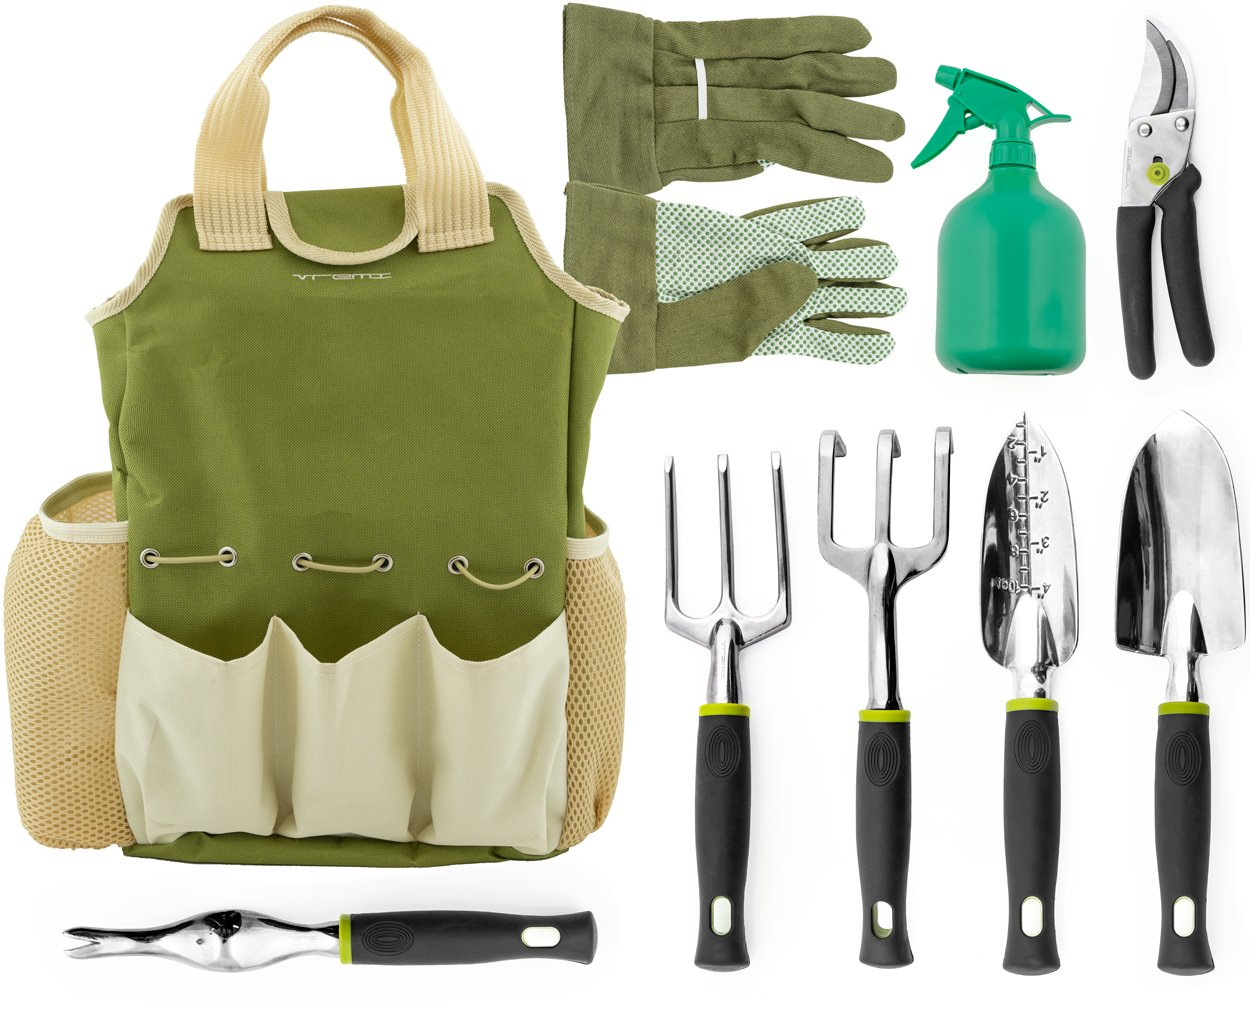 Vremi 9 Piece Garden Tools Set - Gardening Tools with Garden Gloves and Garden Tote - Gardening Gifts Tool Set with Garden Trowel Pruners and More - Vegetable Herb Garden Hand Tools with Storage Tote by Vremi